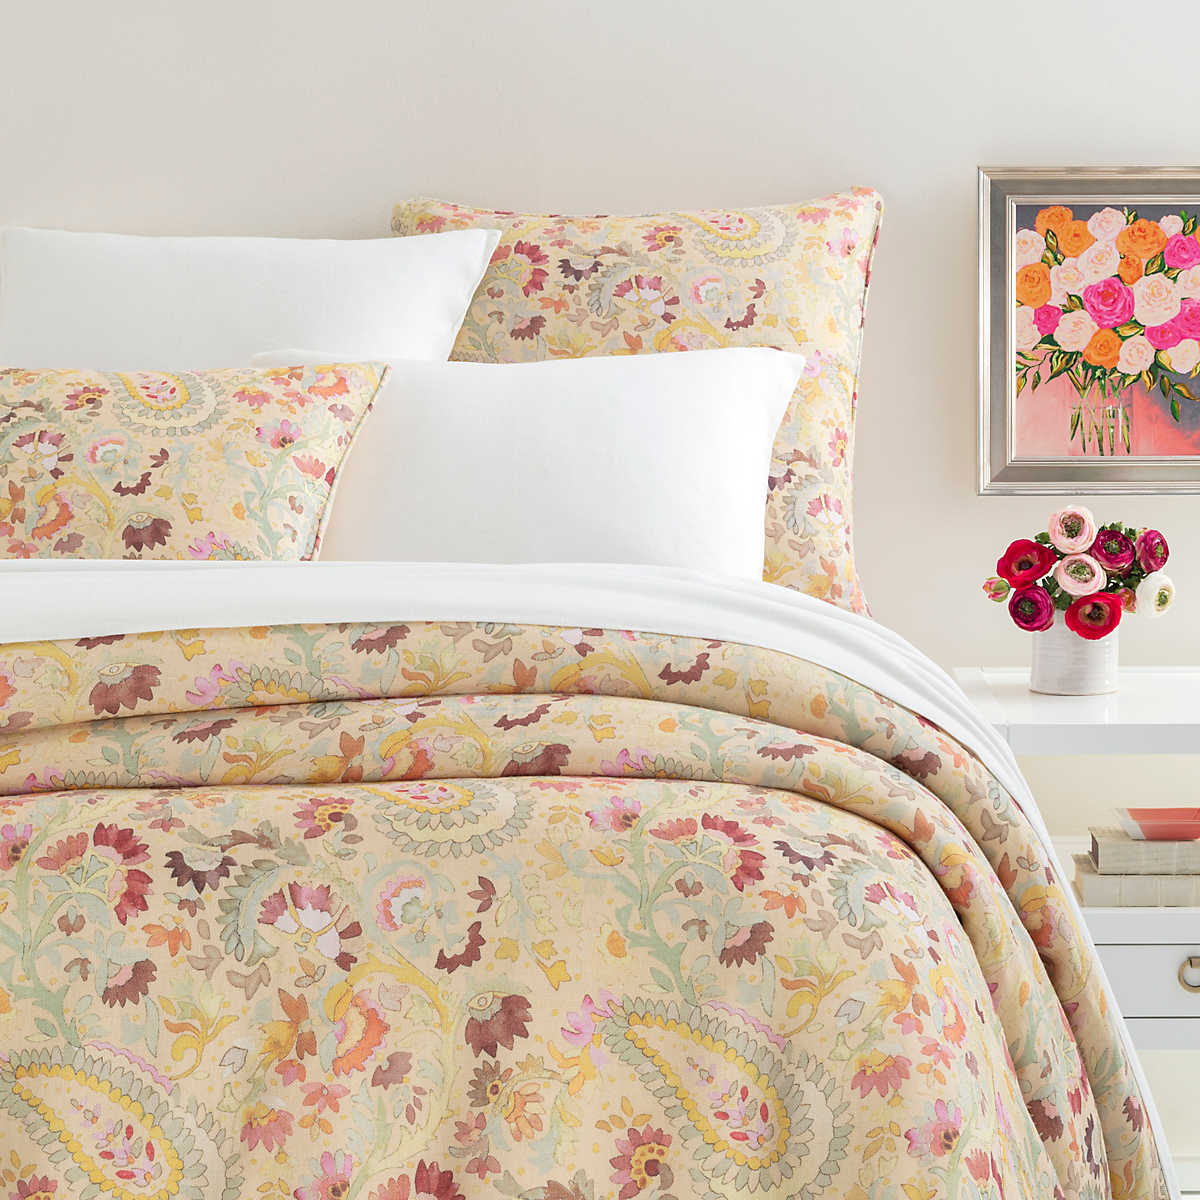 amara the next duvet ted products buy king bed orient linen of baker flight covers cover bedroom previous